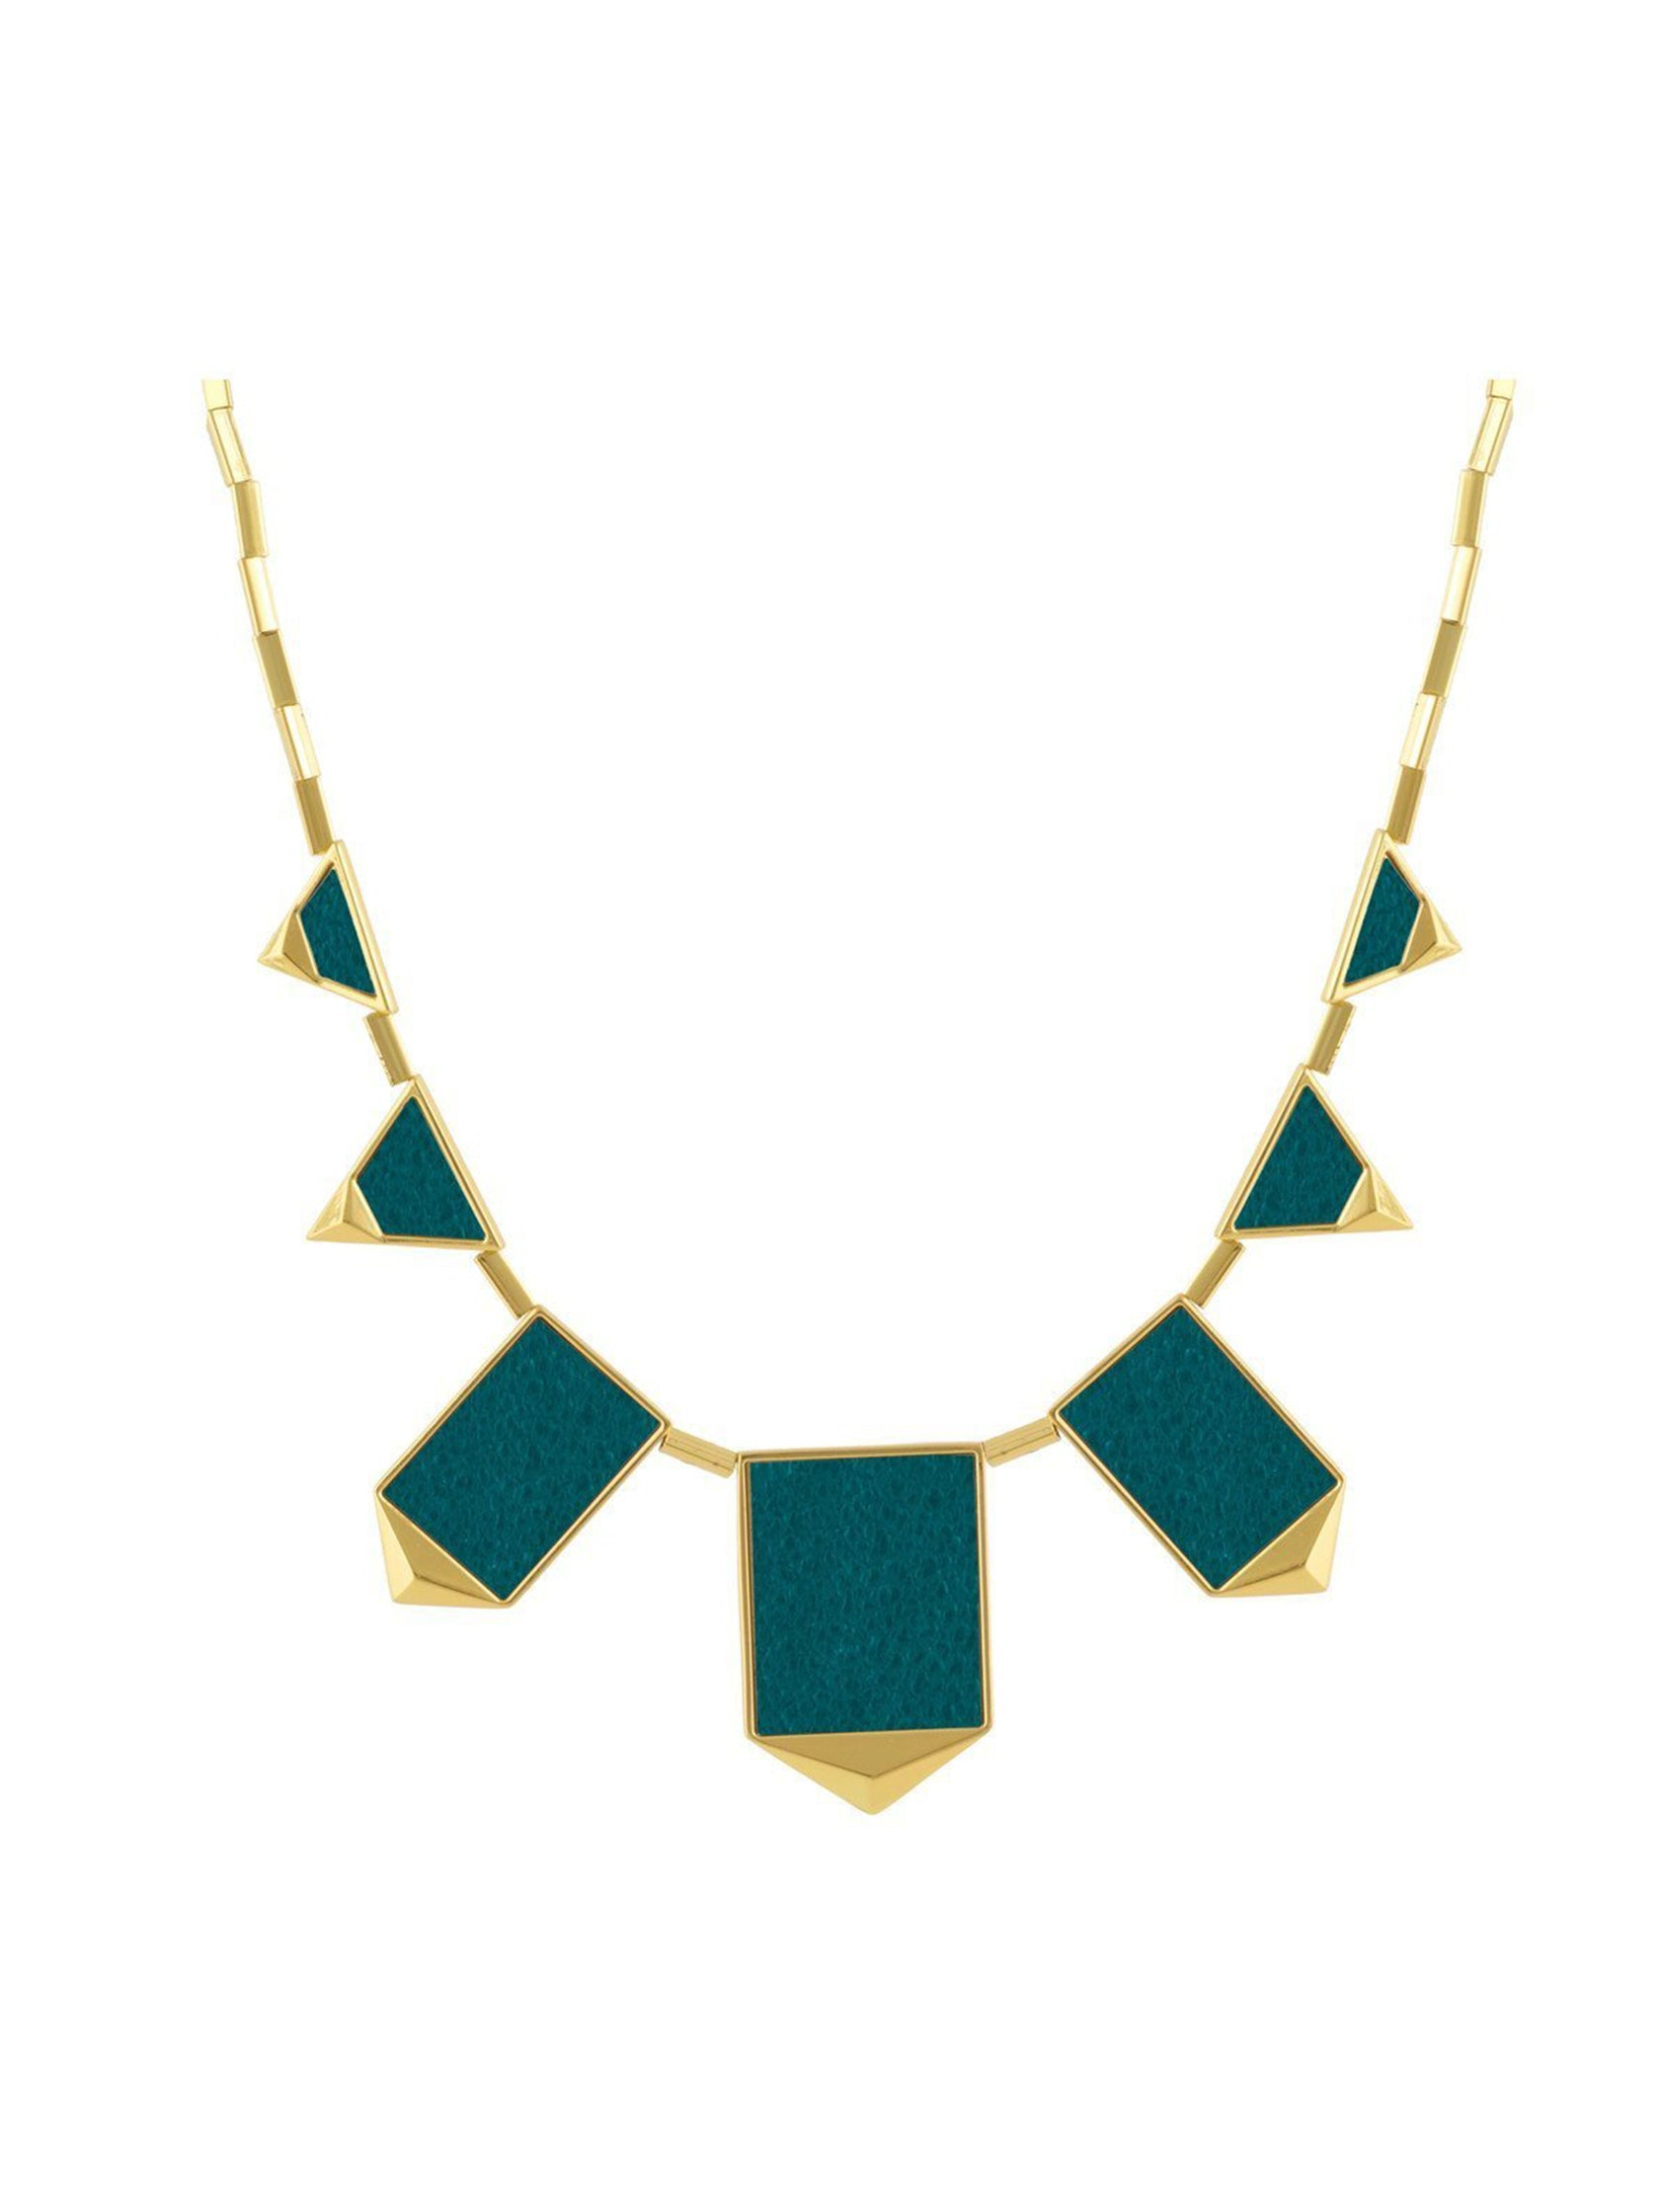 Girl wearing a necklace rental from House of Harlow 1960 called Classic Station Pyramid Necklace